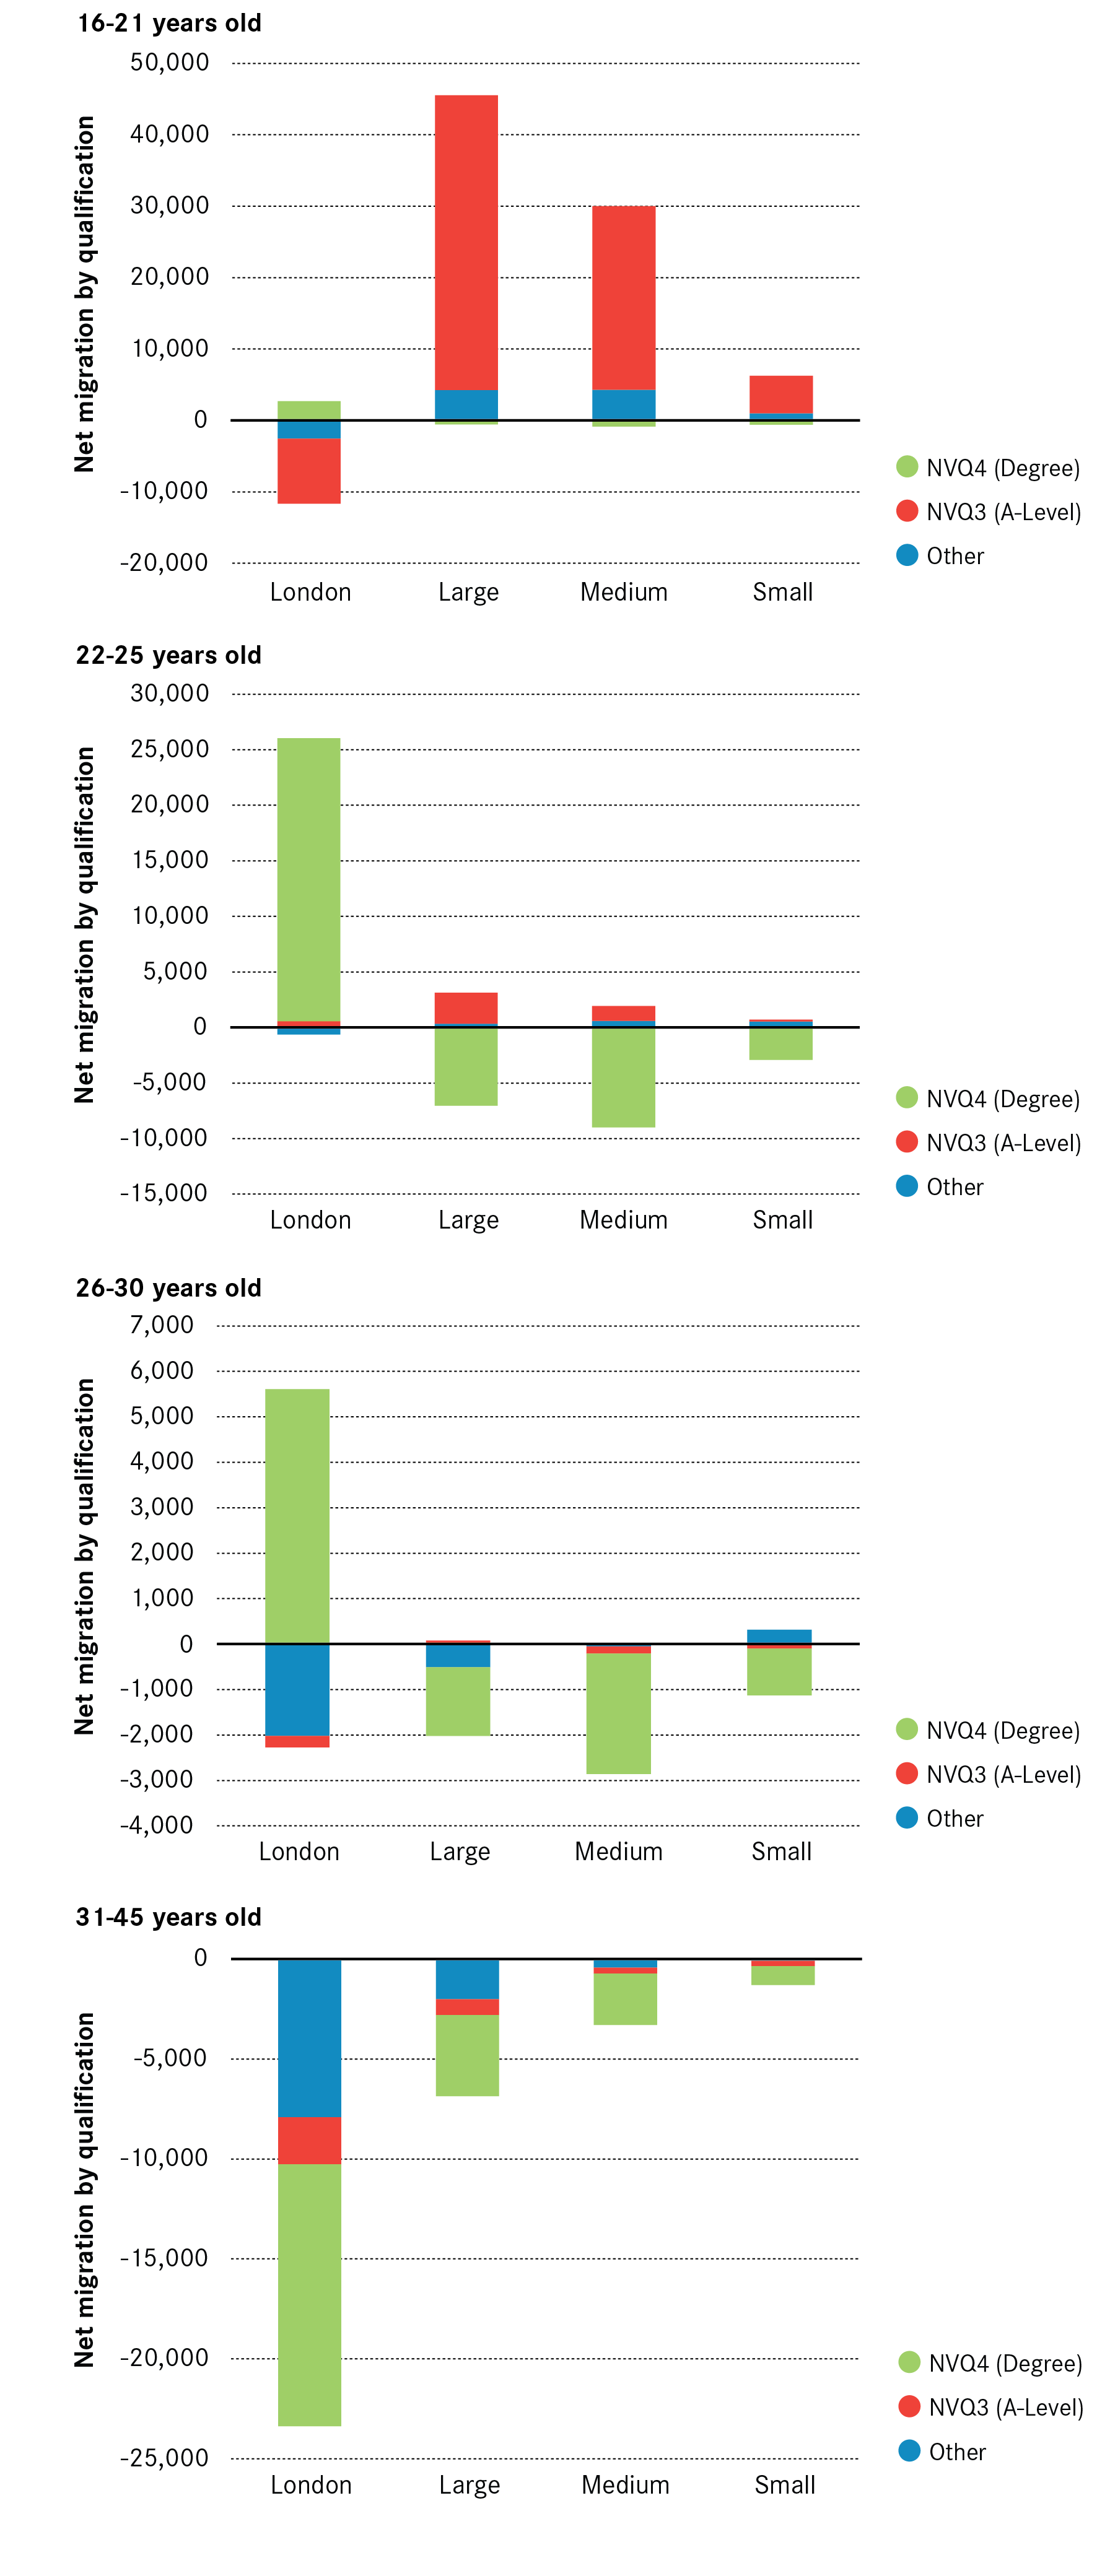 net-inflow-by-age-and-qualification-for-city-groups-2010-2011-01